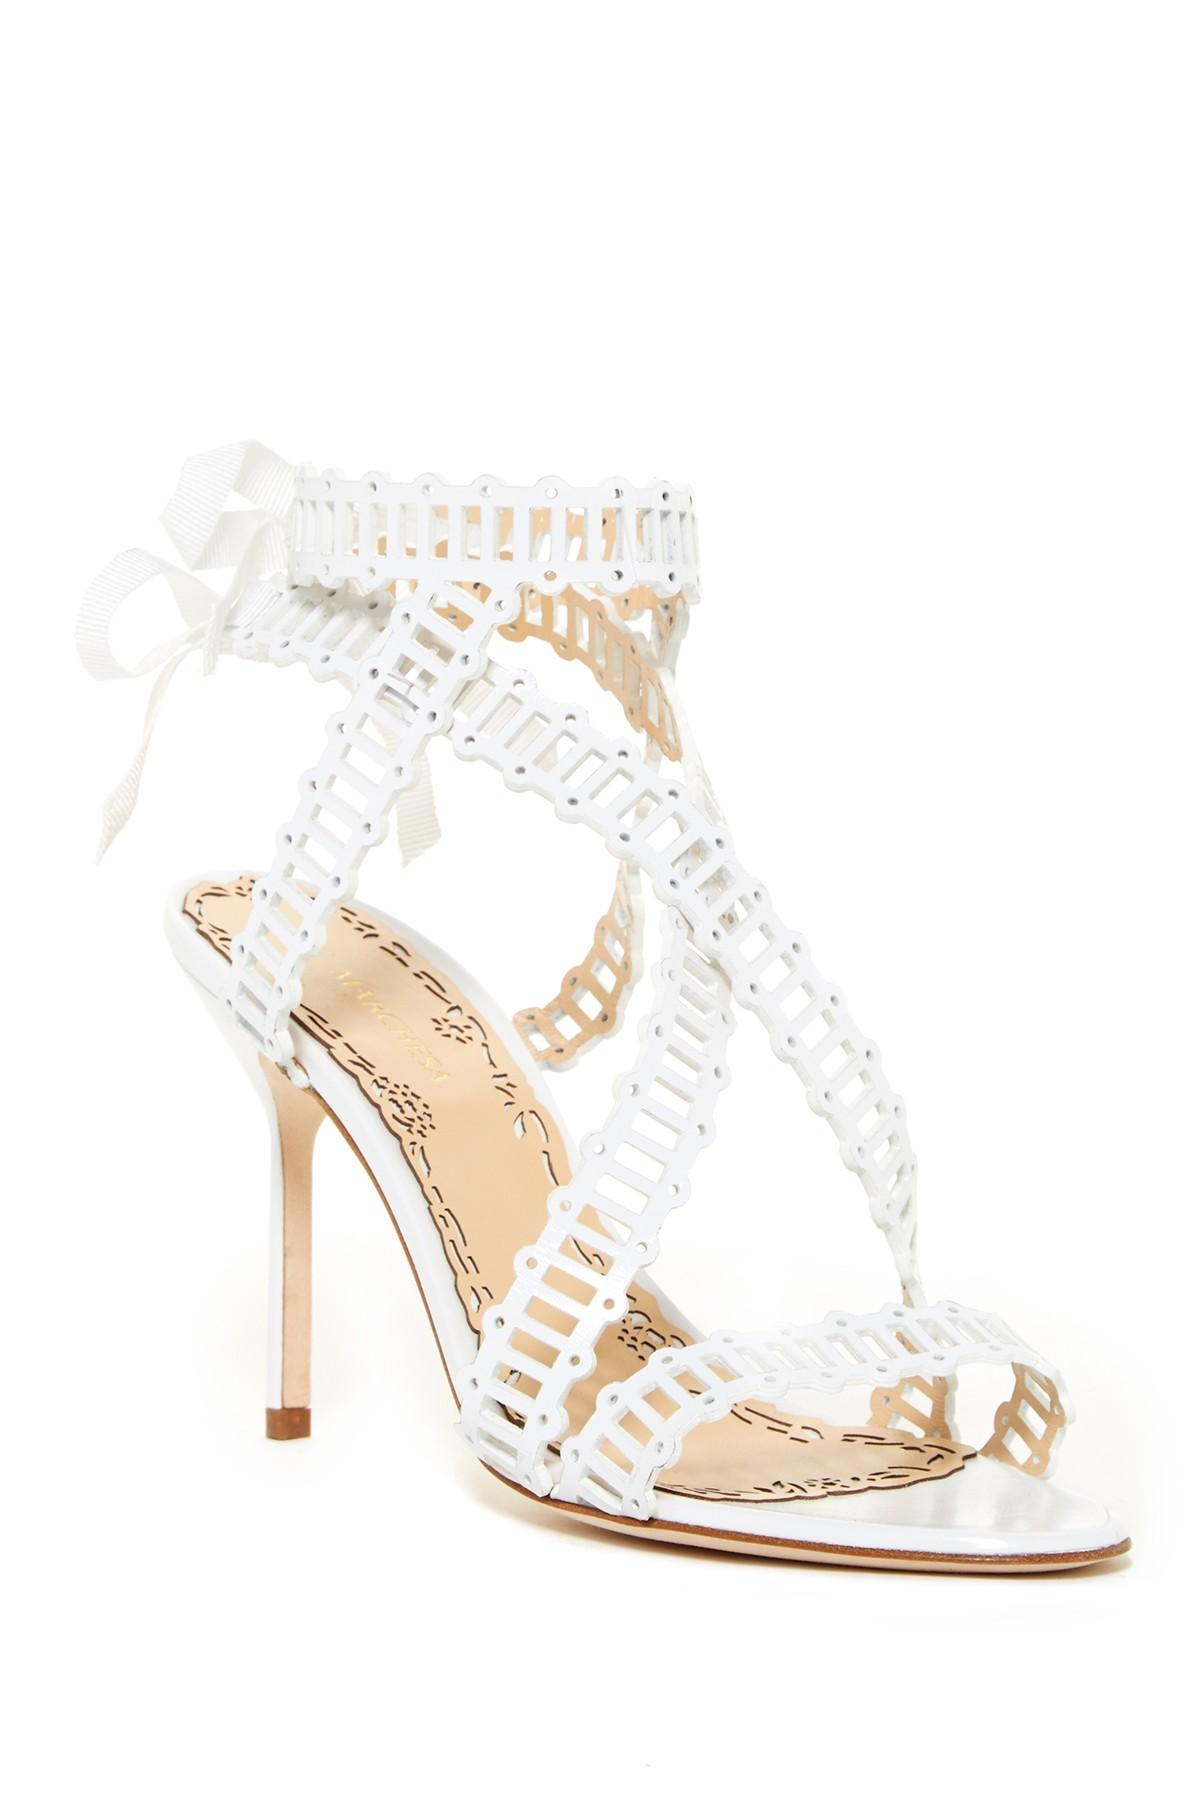 ed93f1f74a Lyst - Marchesa Sarah Dress Sandal in White